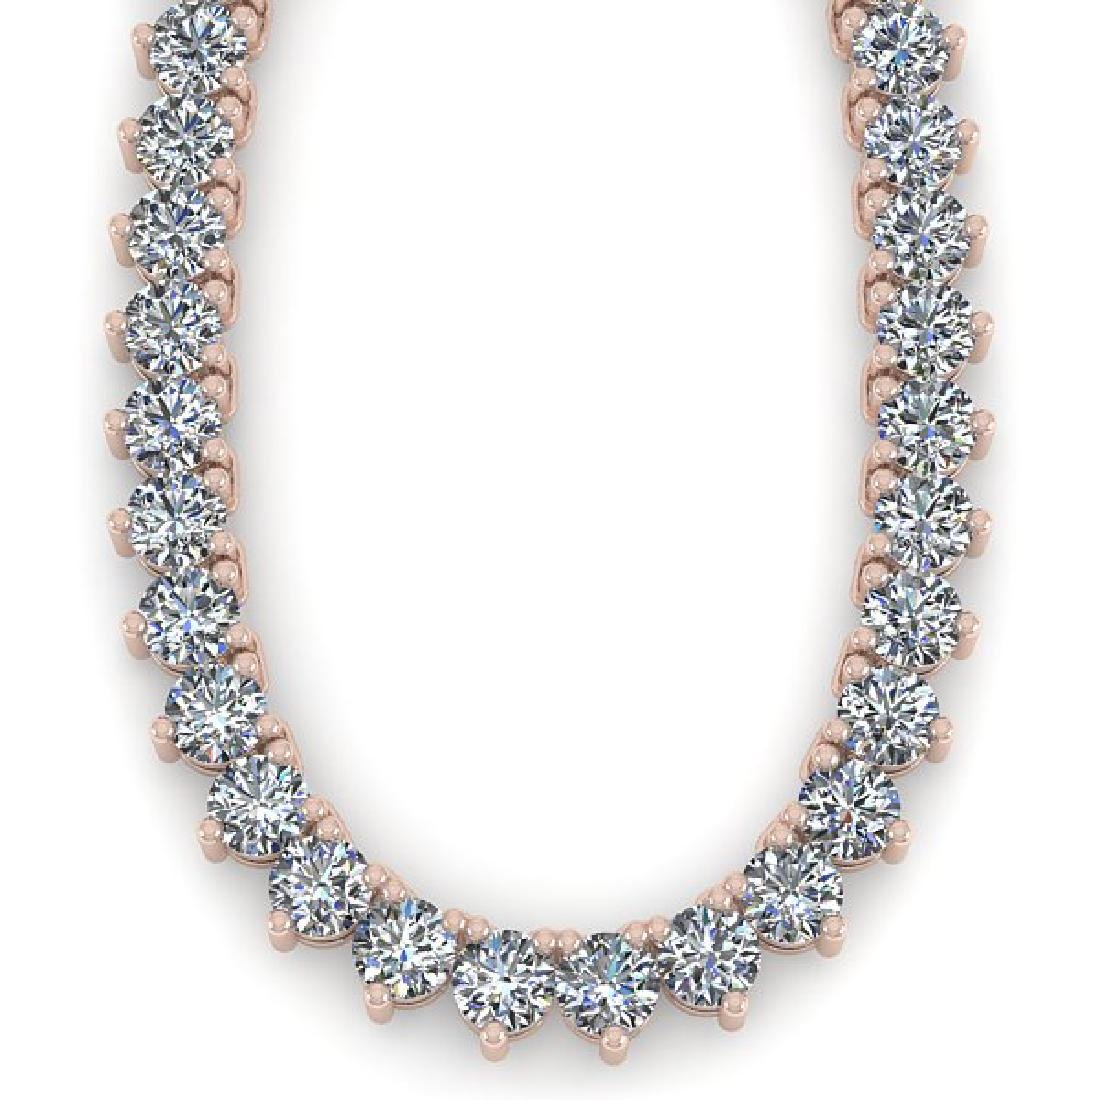 48 CTW Solitaire SI Diamond Necklace 14K Rose Gold